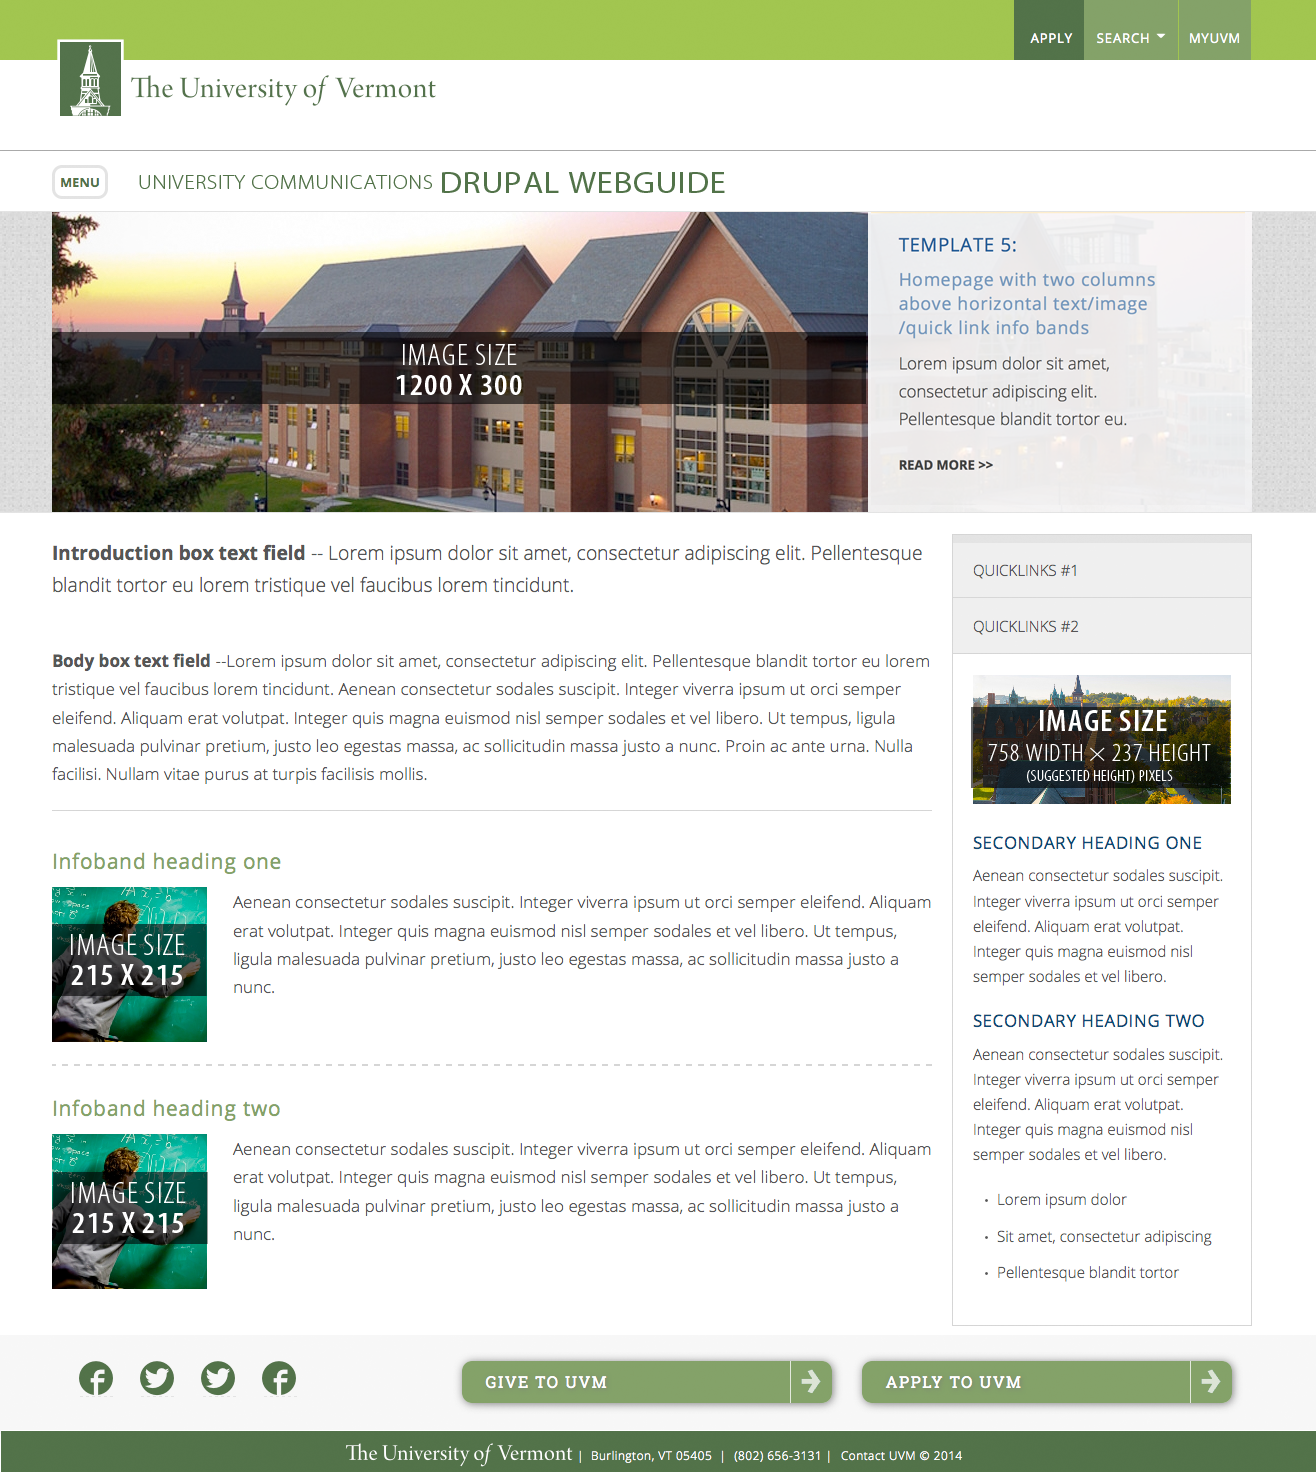 Plan for your drupal site uvm drupal web guide the university of template 5 homepage with two columns above horizontal textimagequick link info bands maxwellsz